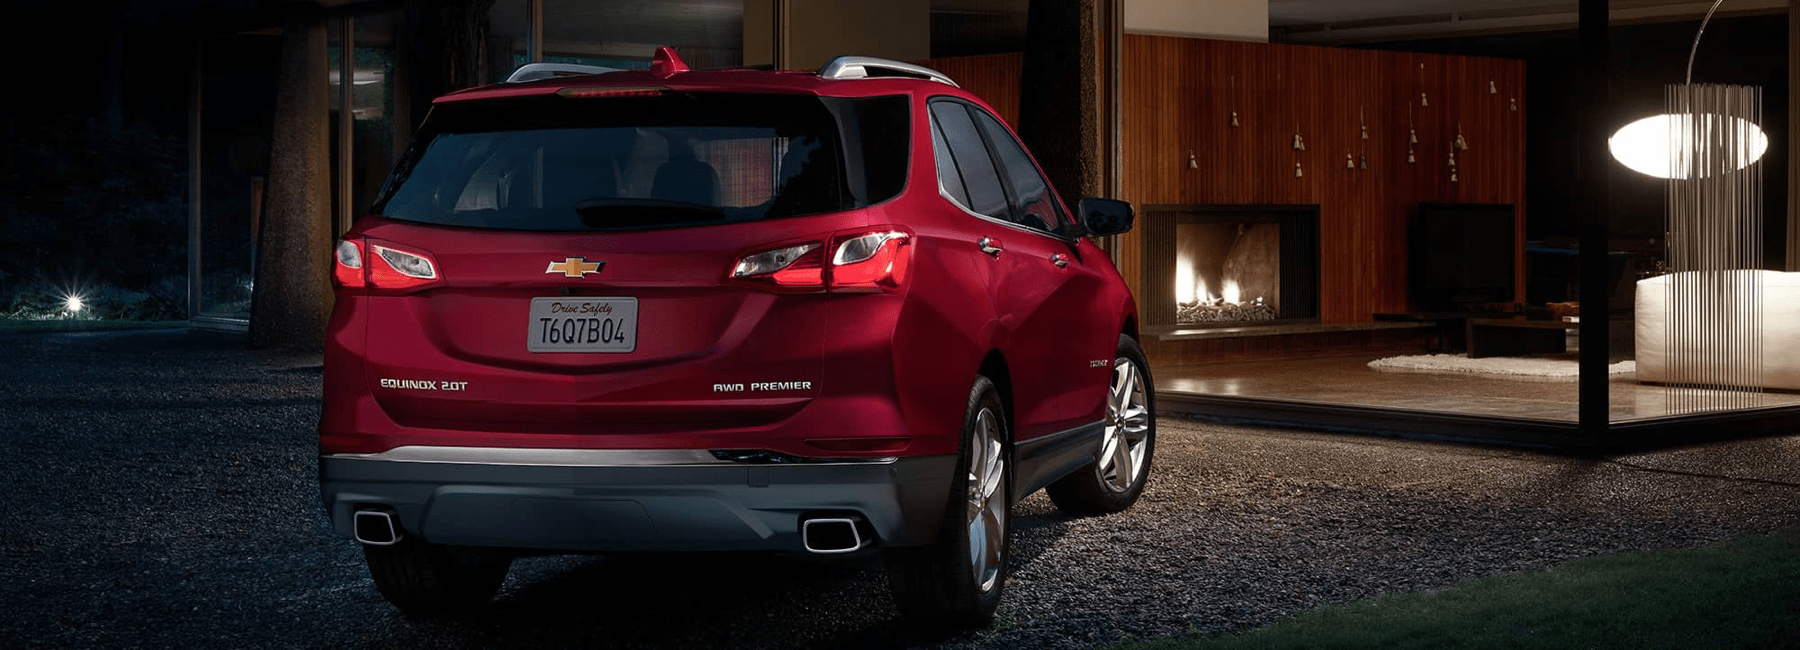 2020 Chevy Equinox parked in front of glass windows